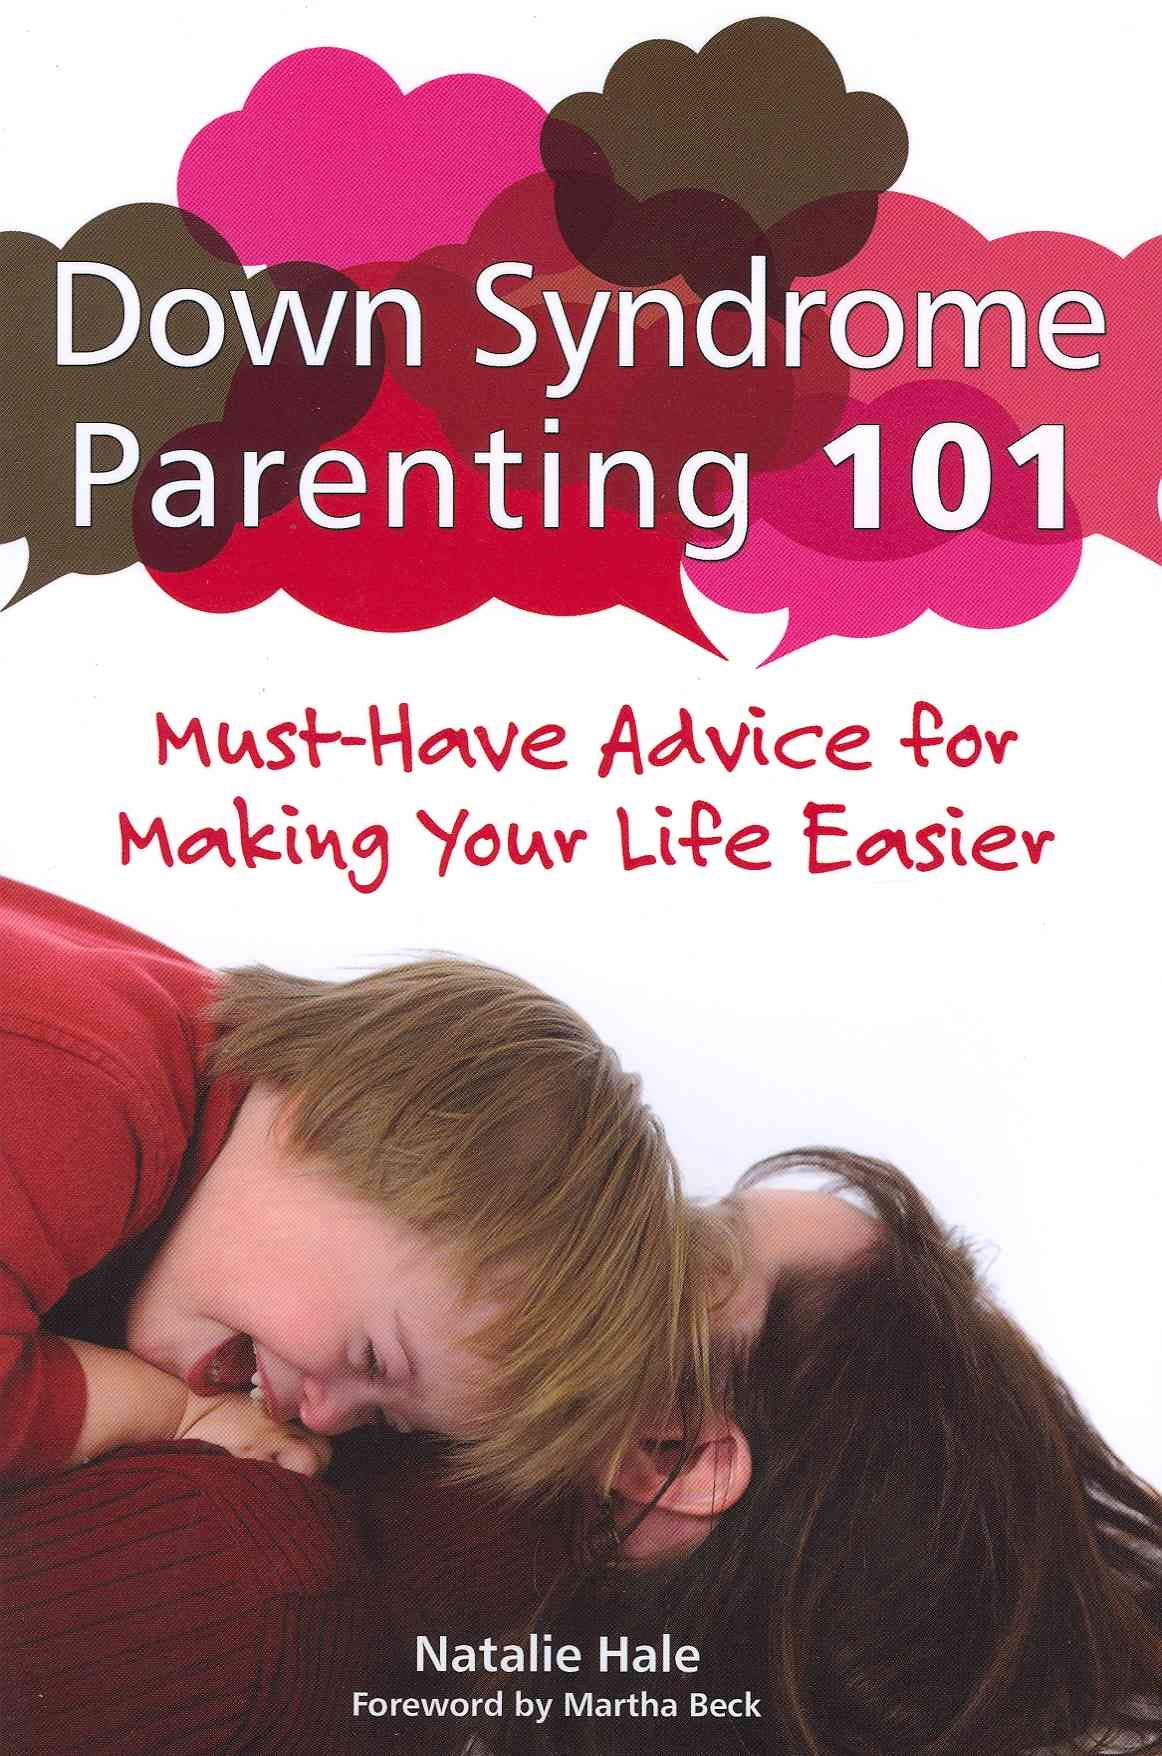 Down Syndrome Parenting 101: Must-Have Advice for Making Your Life Easier (Paperback)